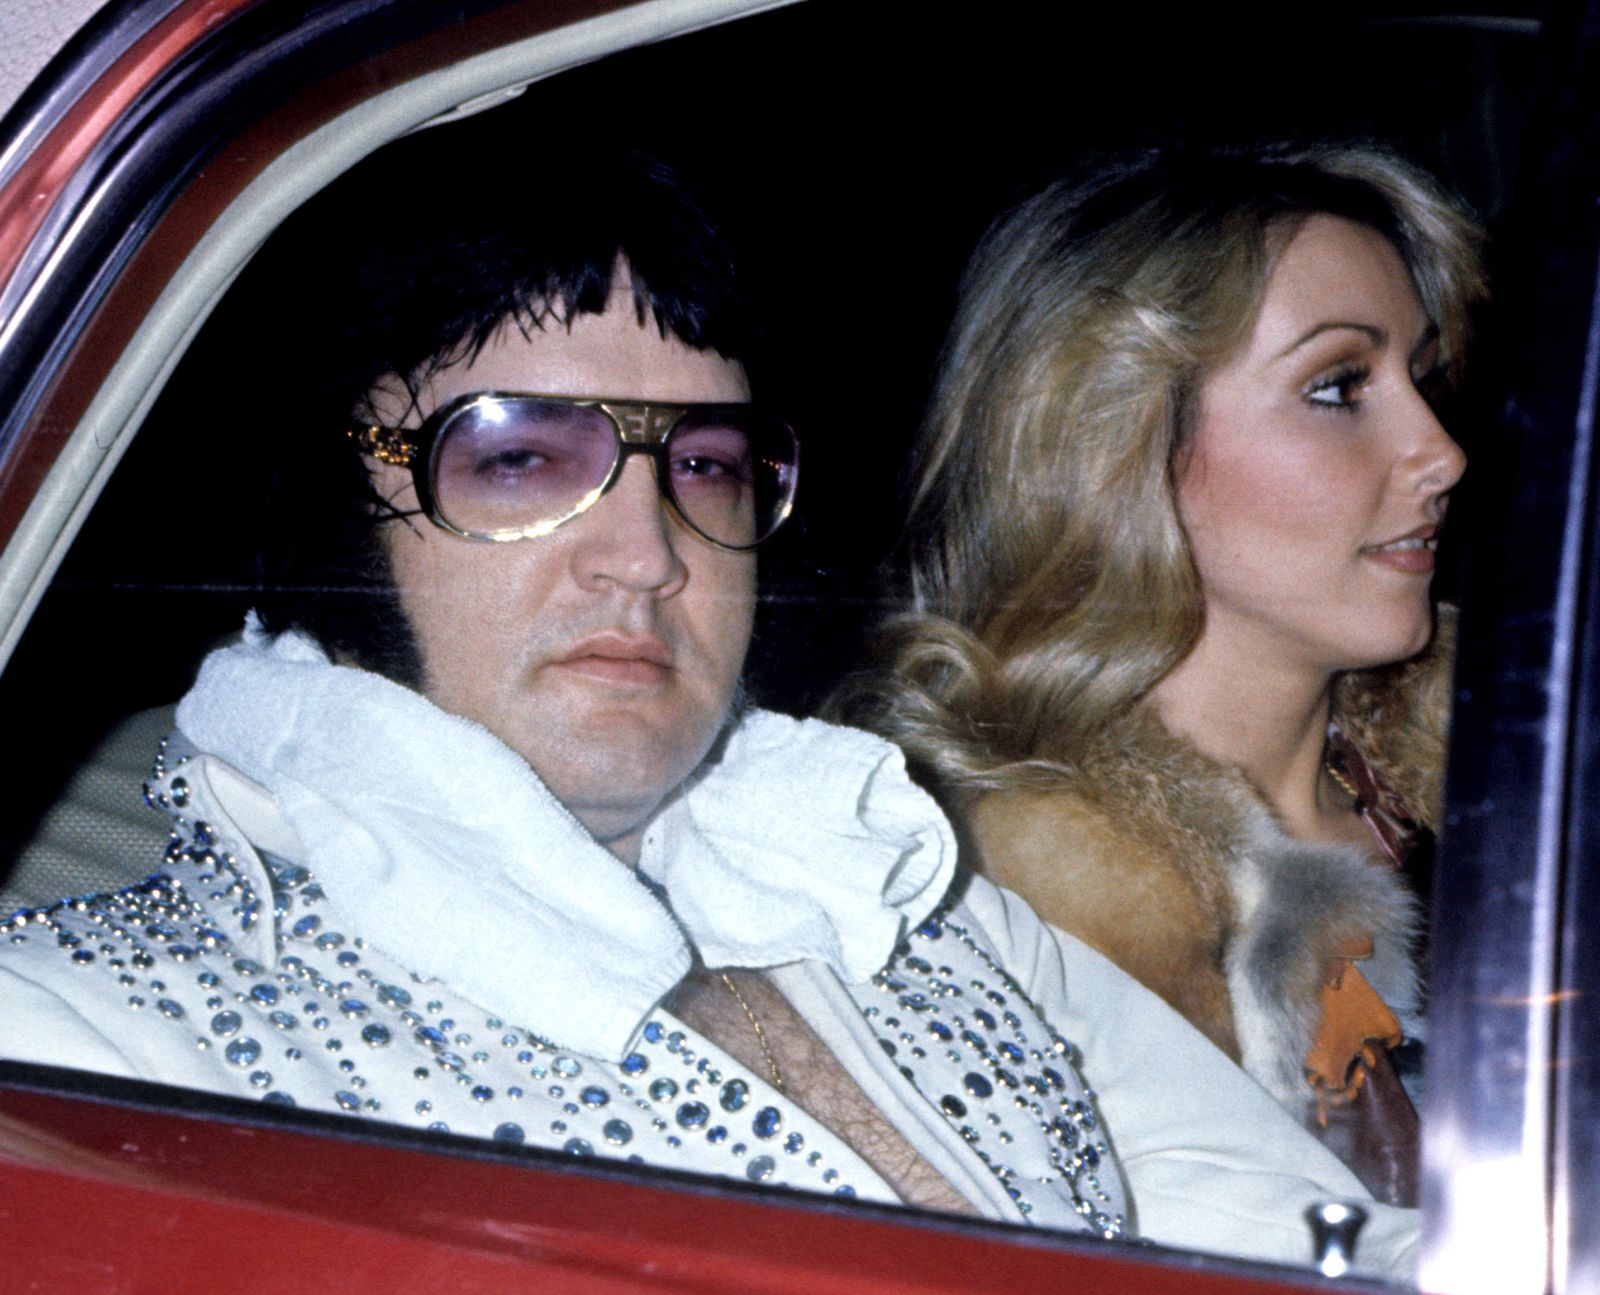 Elvis Presley With Girlfriend Linda Thompson Arrive At Hotel After Concert - March 21, 1976